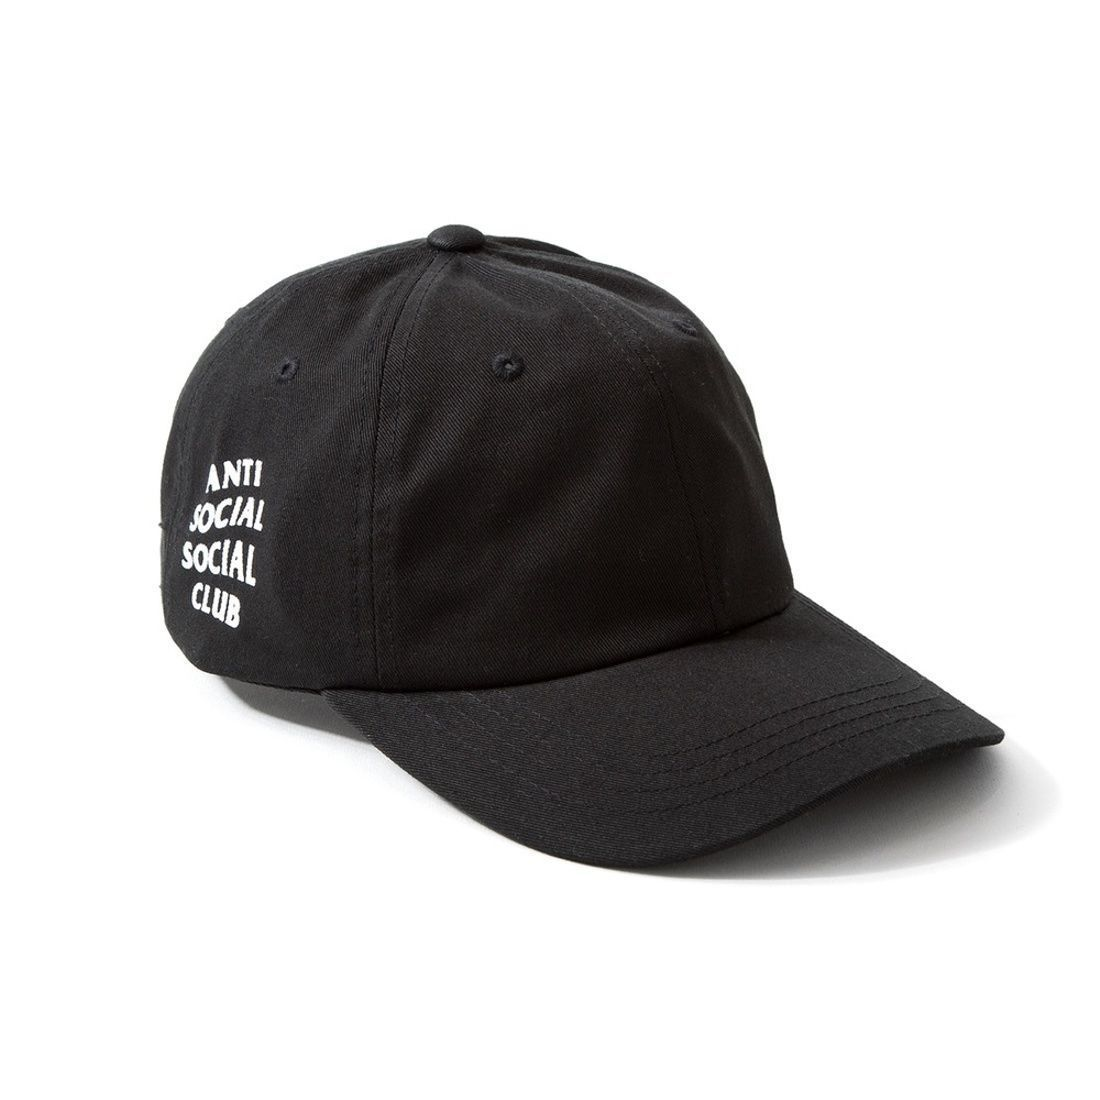 Antisocial Social Club Anti Social Club Assc Dad Hat Baseball Cap Street  Wear fa930289c0f0